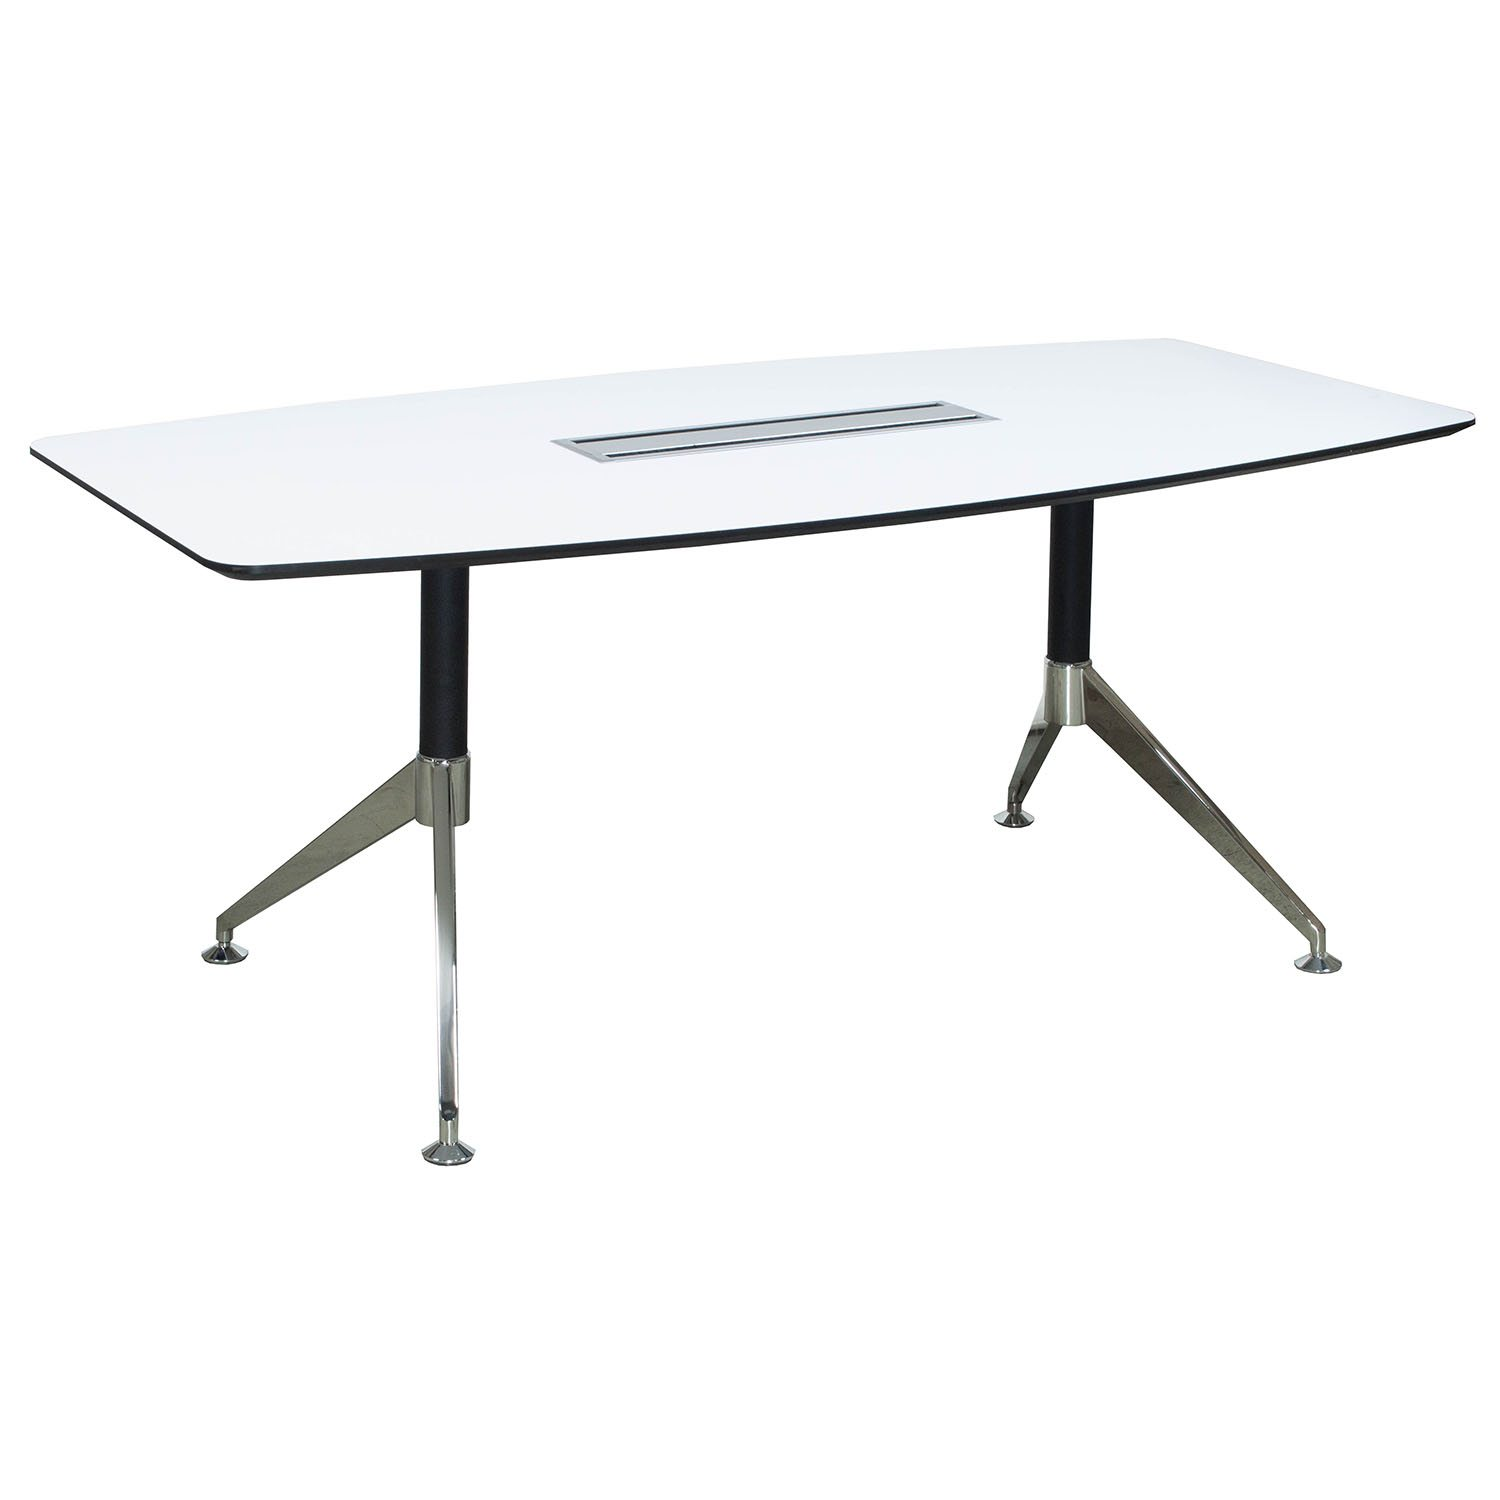 Morgan 6 Foot Melamine Boat Shaped Conference Table White